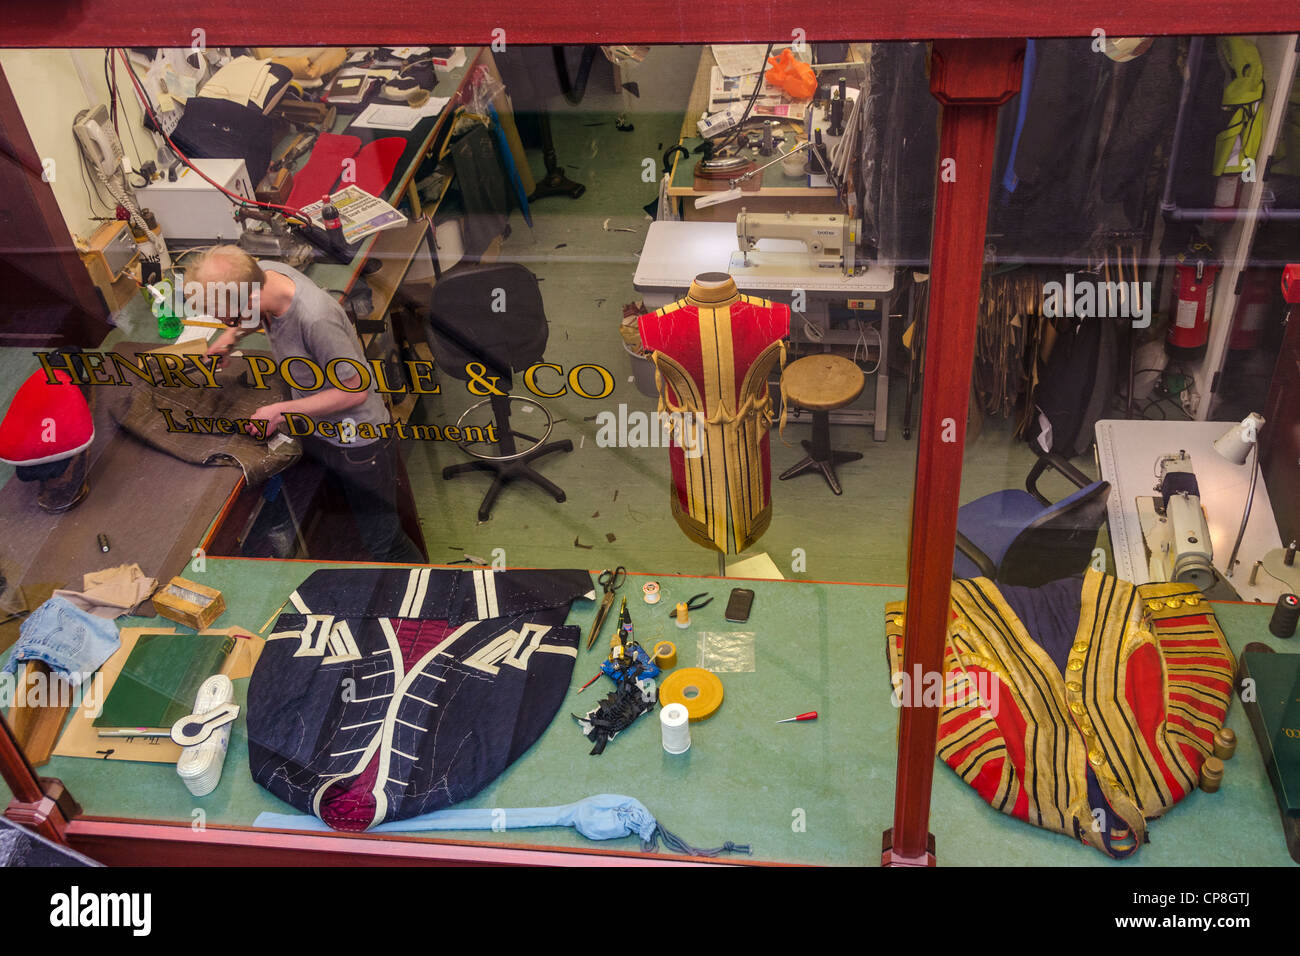 Henry Poole Tailors, Livery Department workshop. Saville Row London - Stock Image